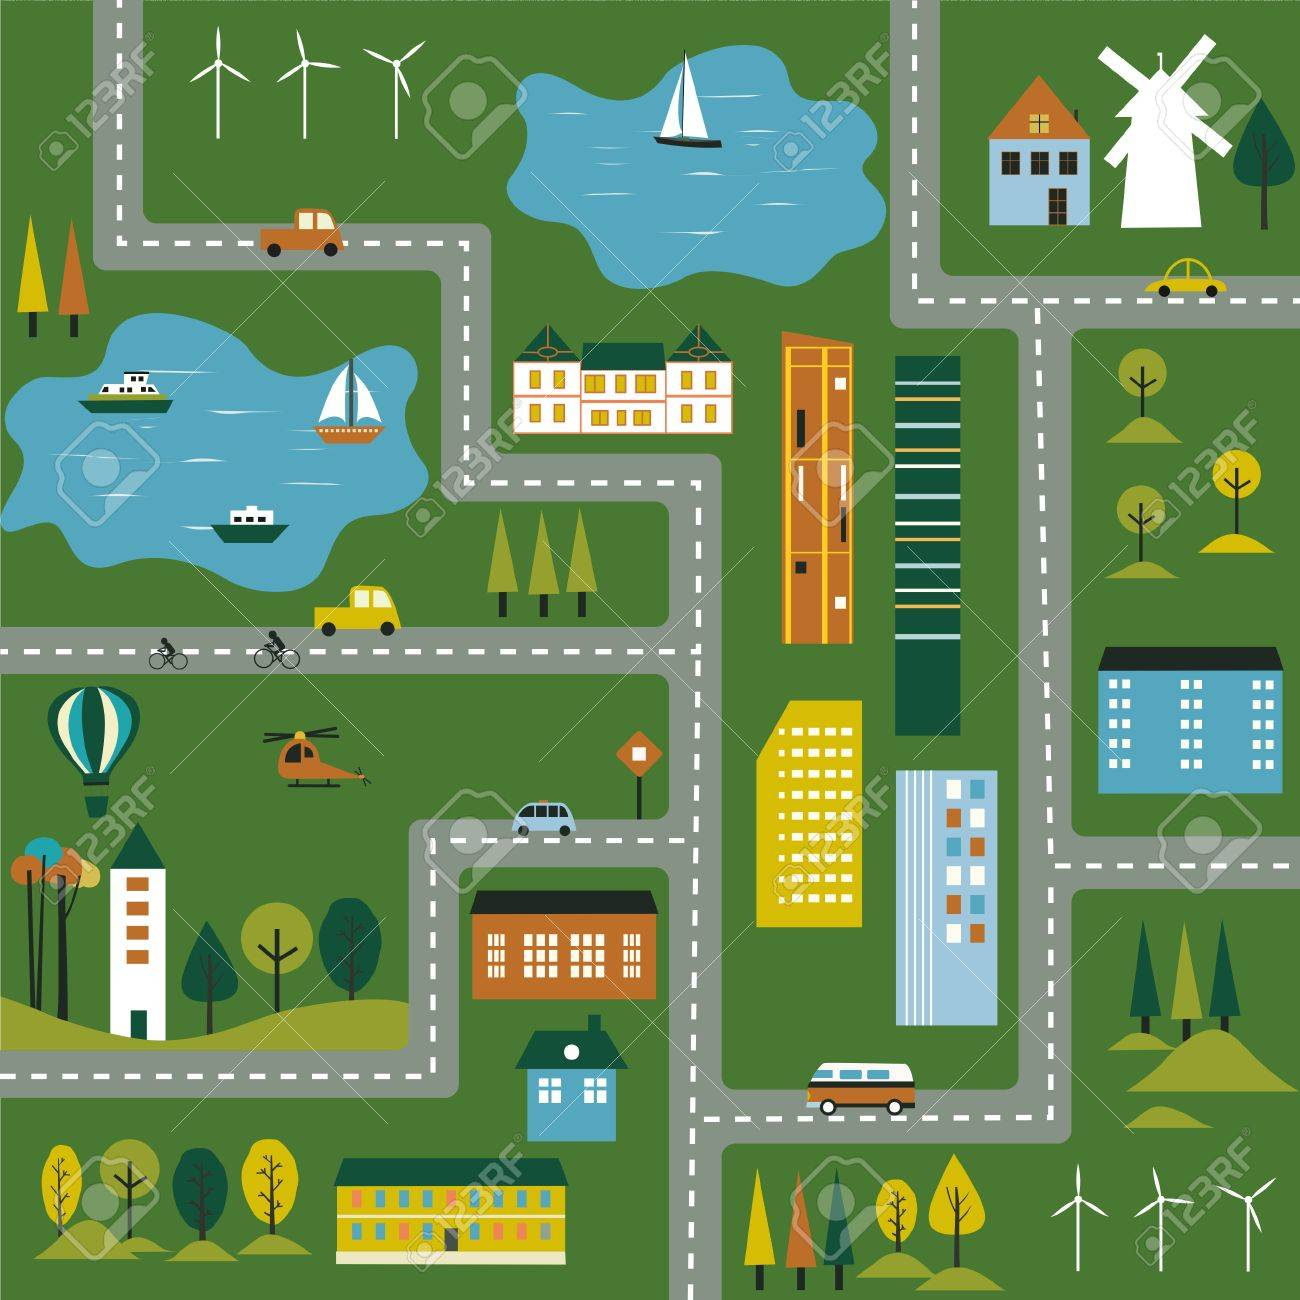 Map Of The City Cartoon Illustration Of A Map Of The City. Vector Stock Photo